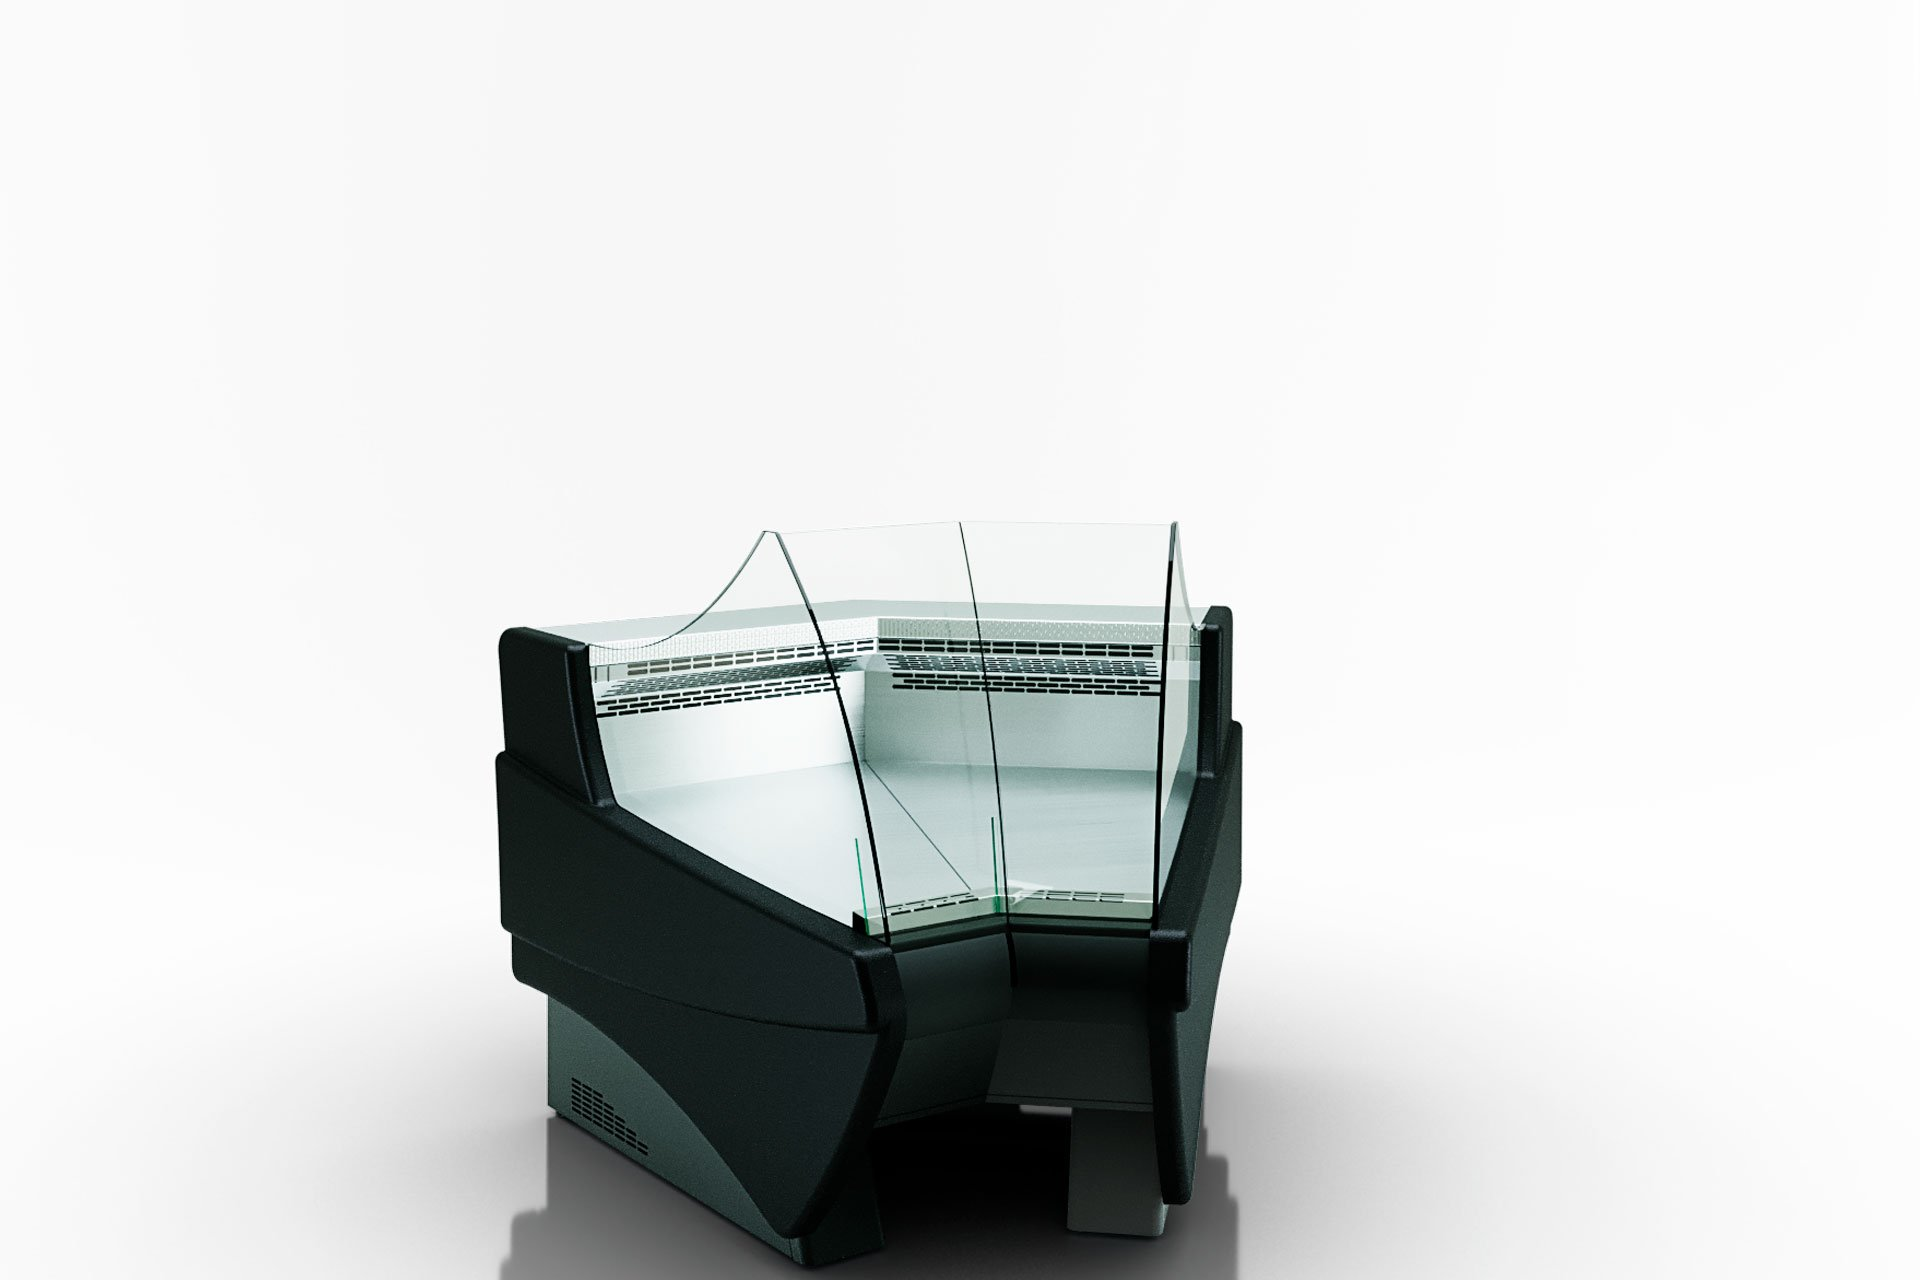 Counter Symphony luxe MG 120 deli T2 110-DLM-IS45